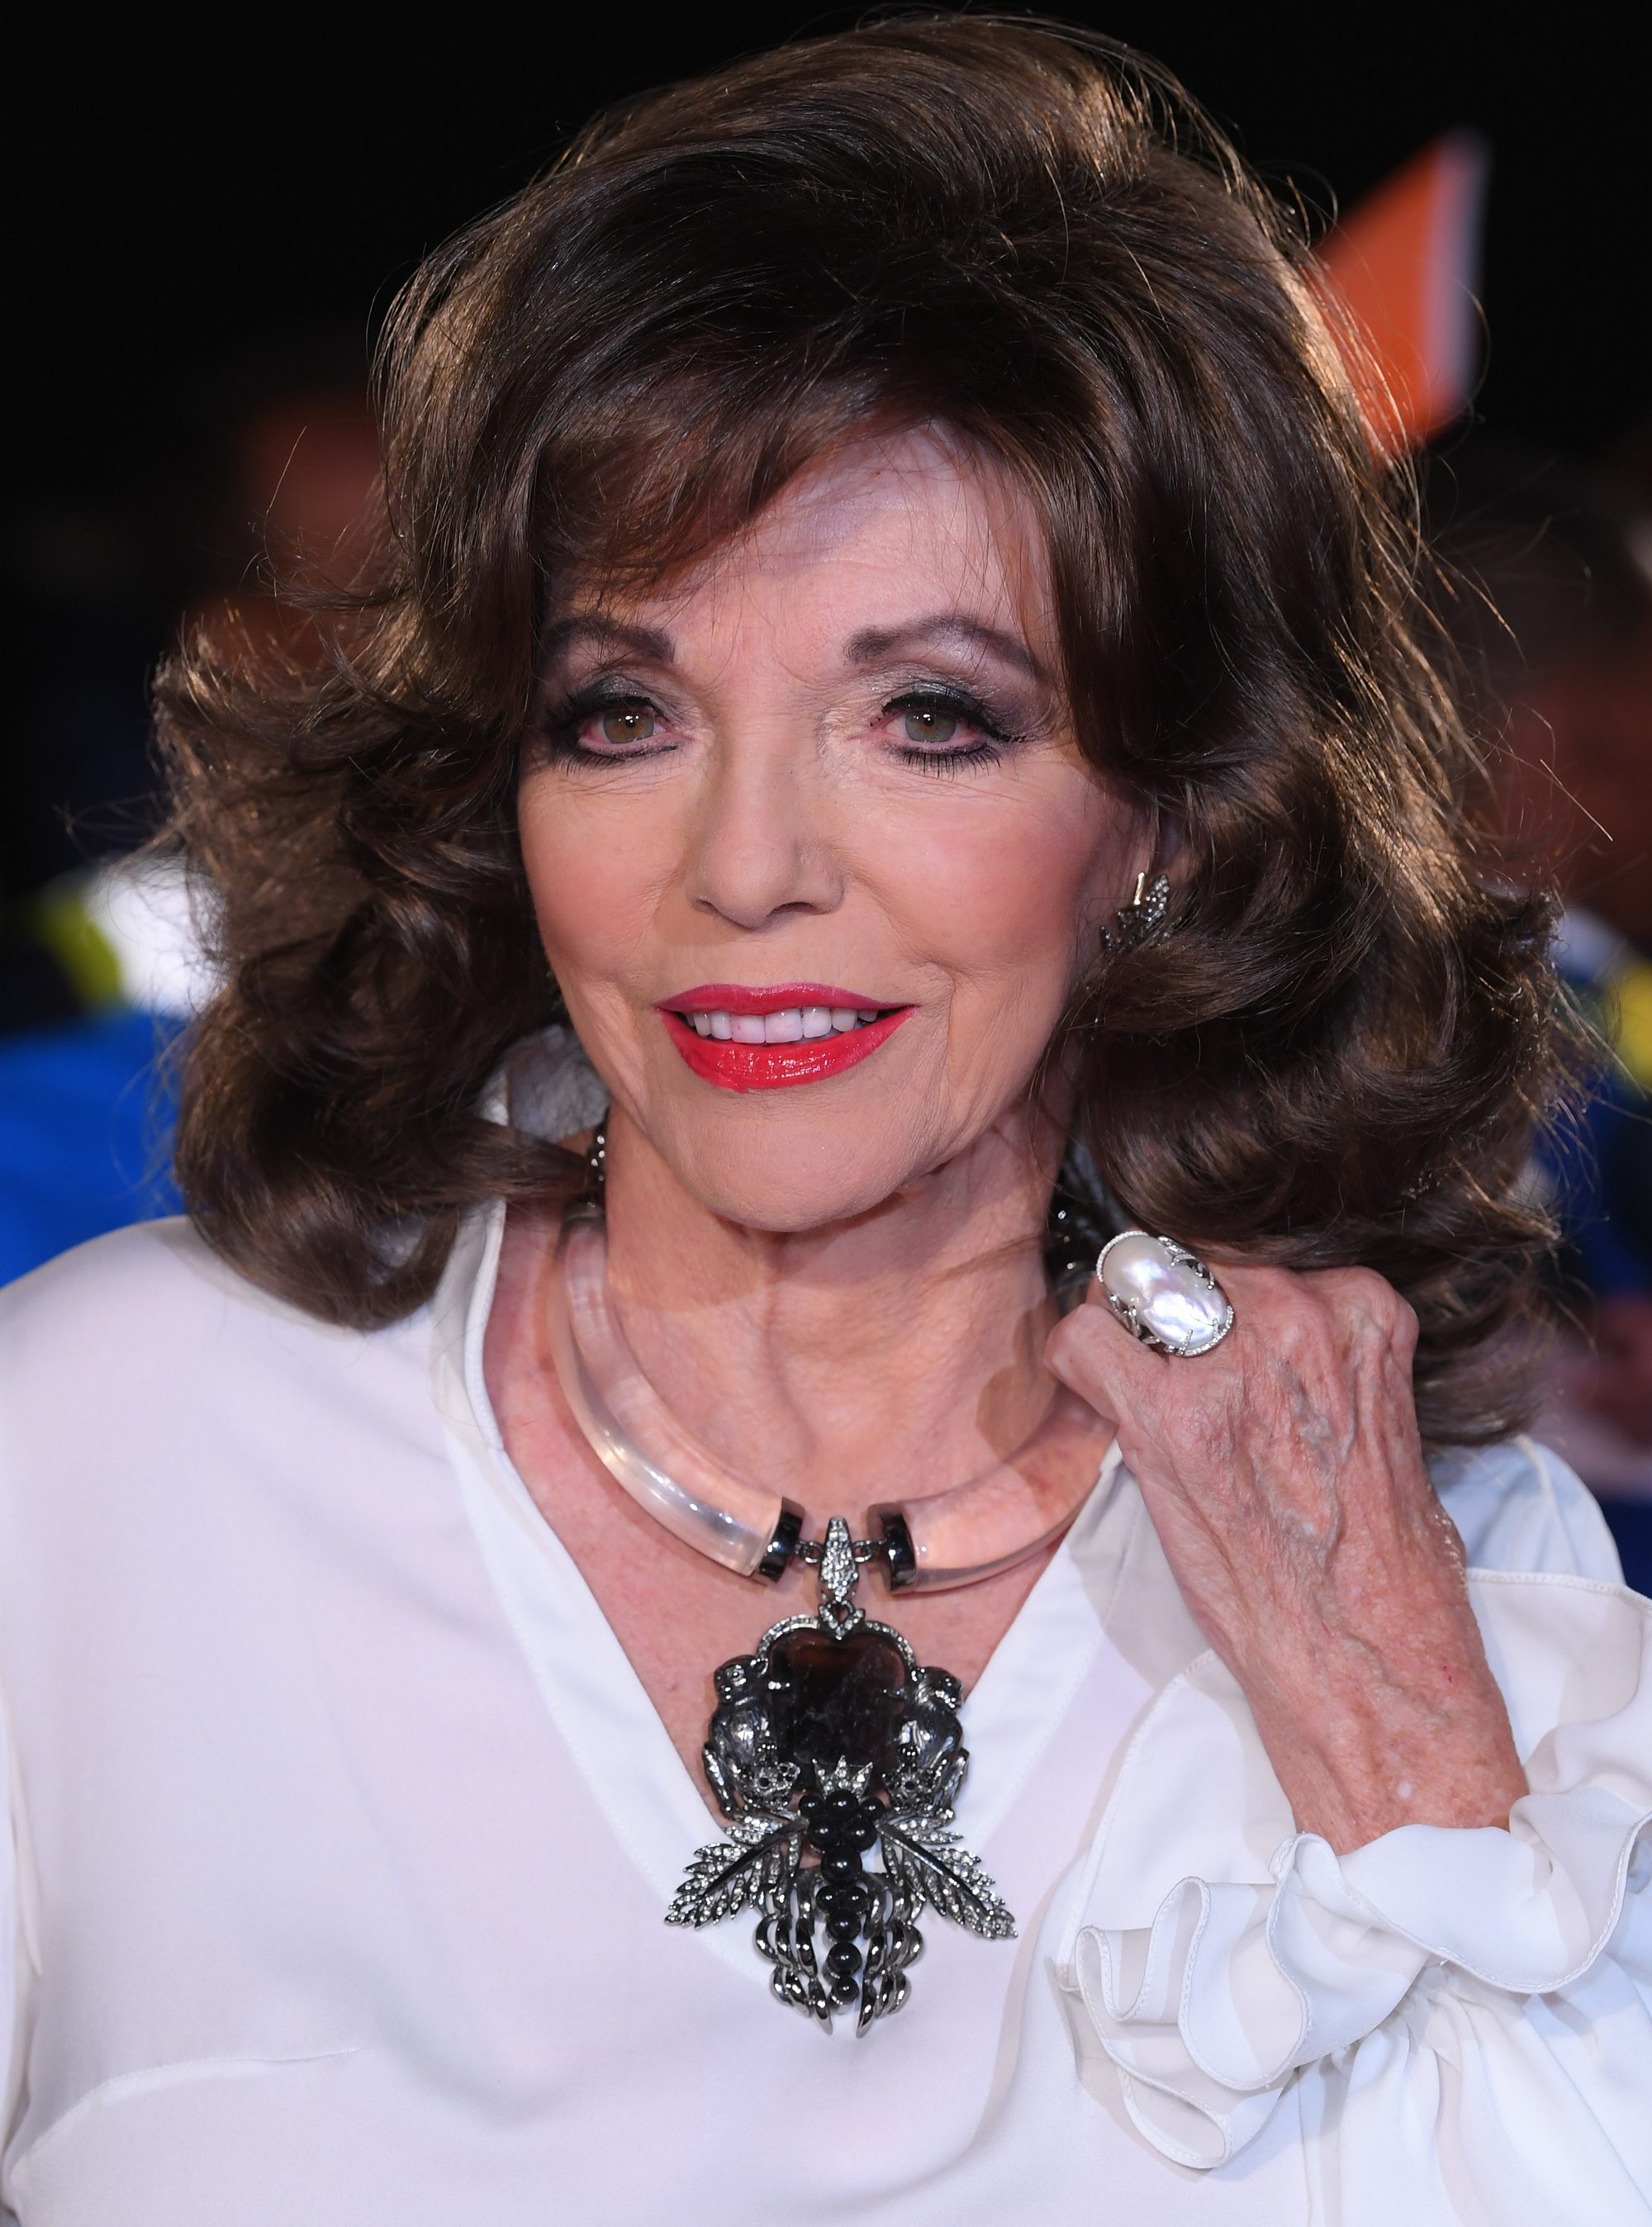 The £1.77 Nivea Cleanser Joan Collins Has Used For Years